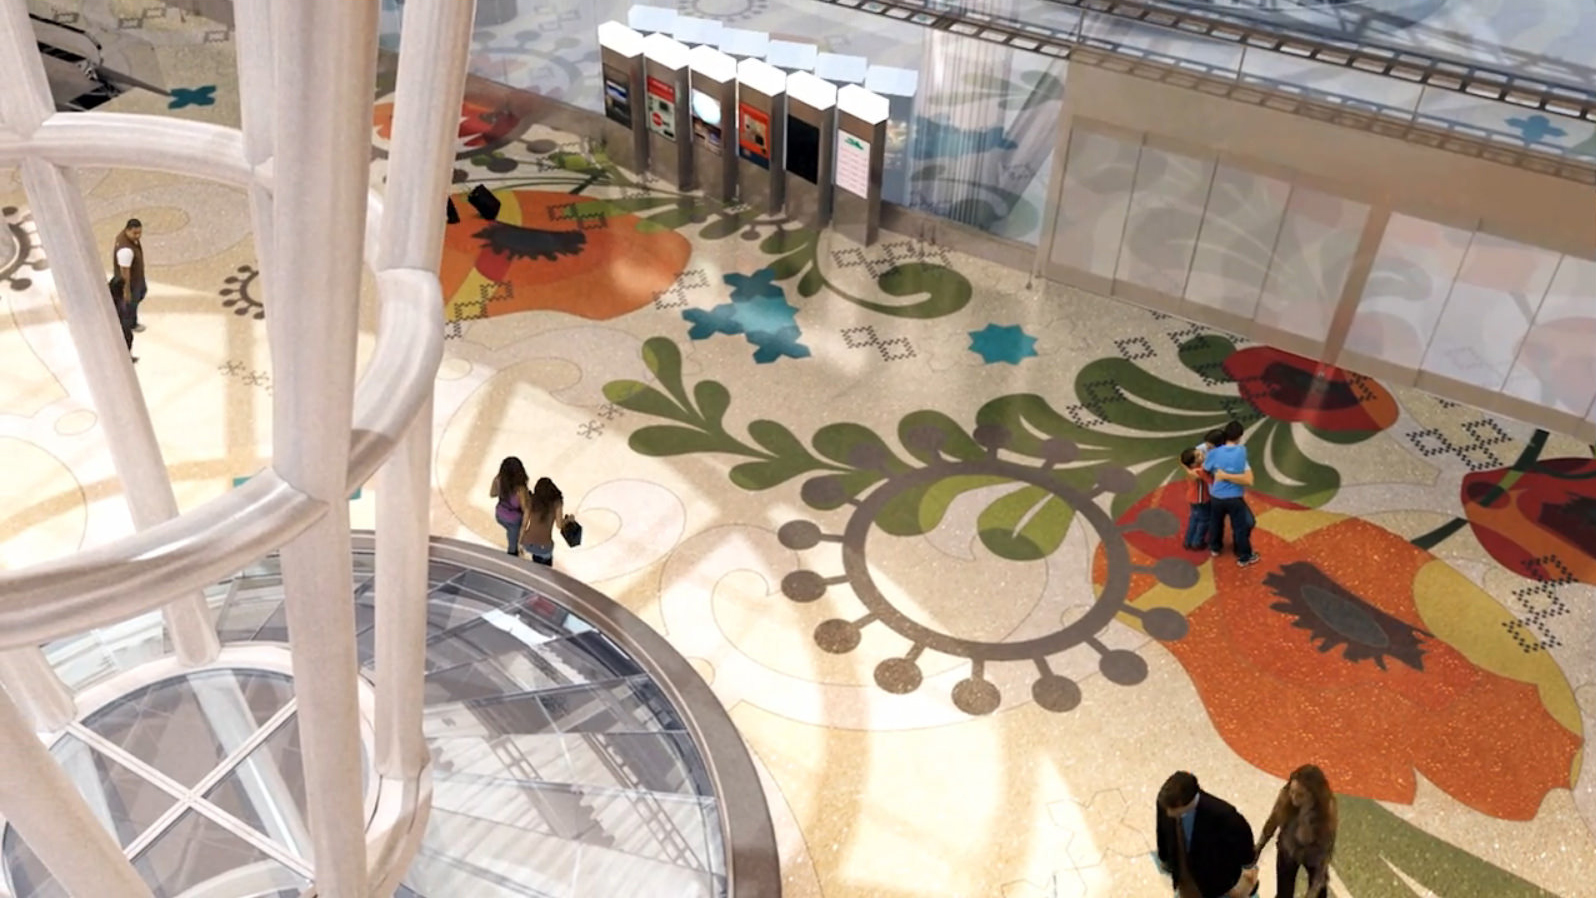 A rendering of Julie Chang's 'Secret Garden' terrazzo floor, as seen from above.